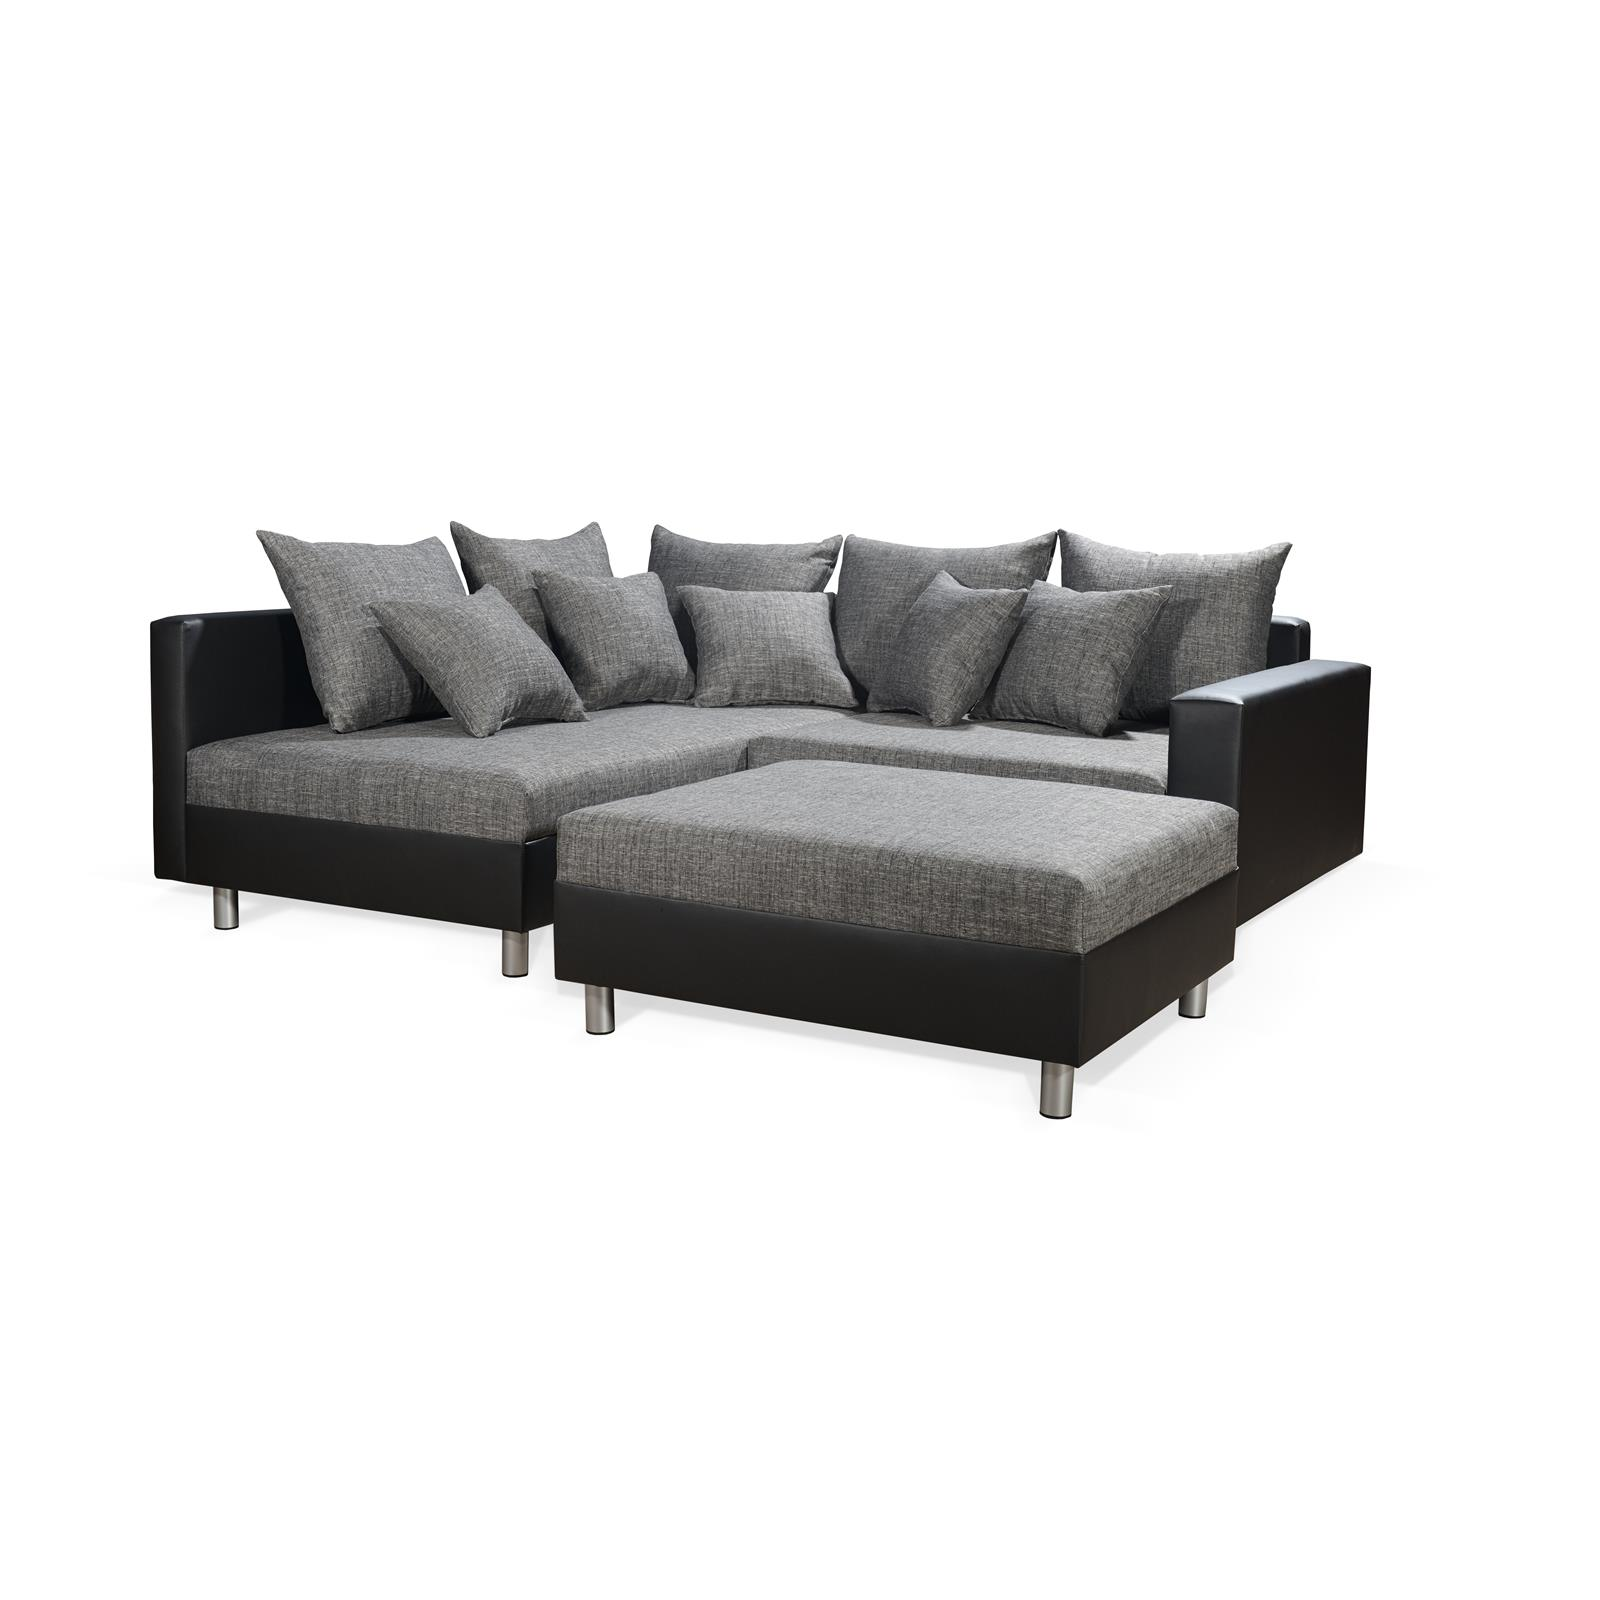 big sofa leder big sofa leder schwarz carprola for big. Black Bedroom Furniture Sets. Home Design Ideas